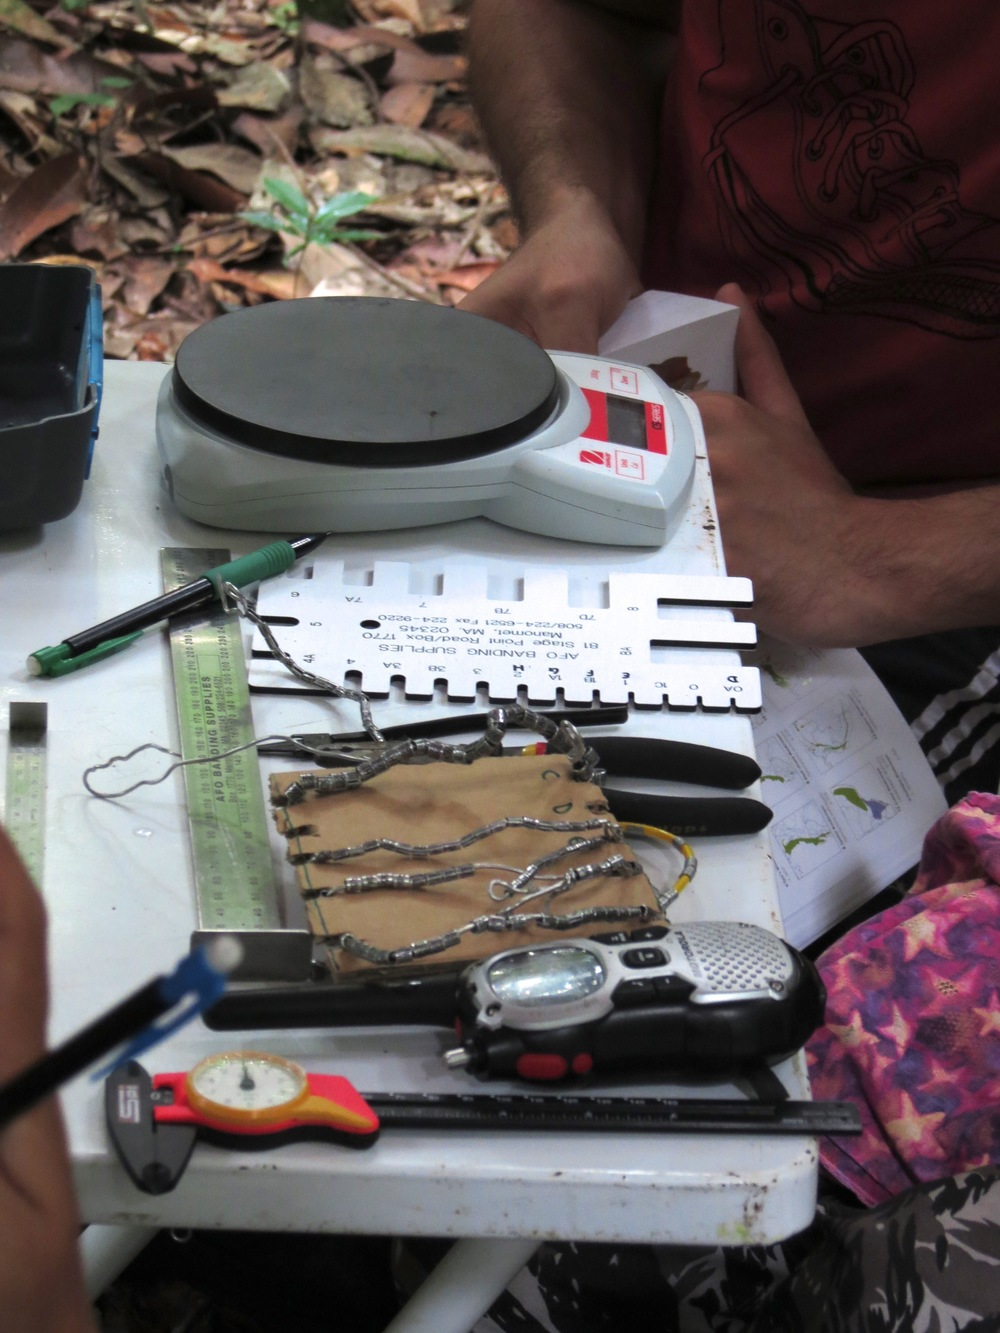 Banding station table with scales, calipers, bands, pliers and radio (Photo by Humberto Mohr).